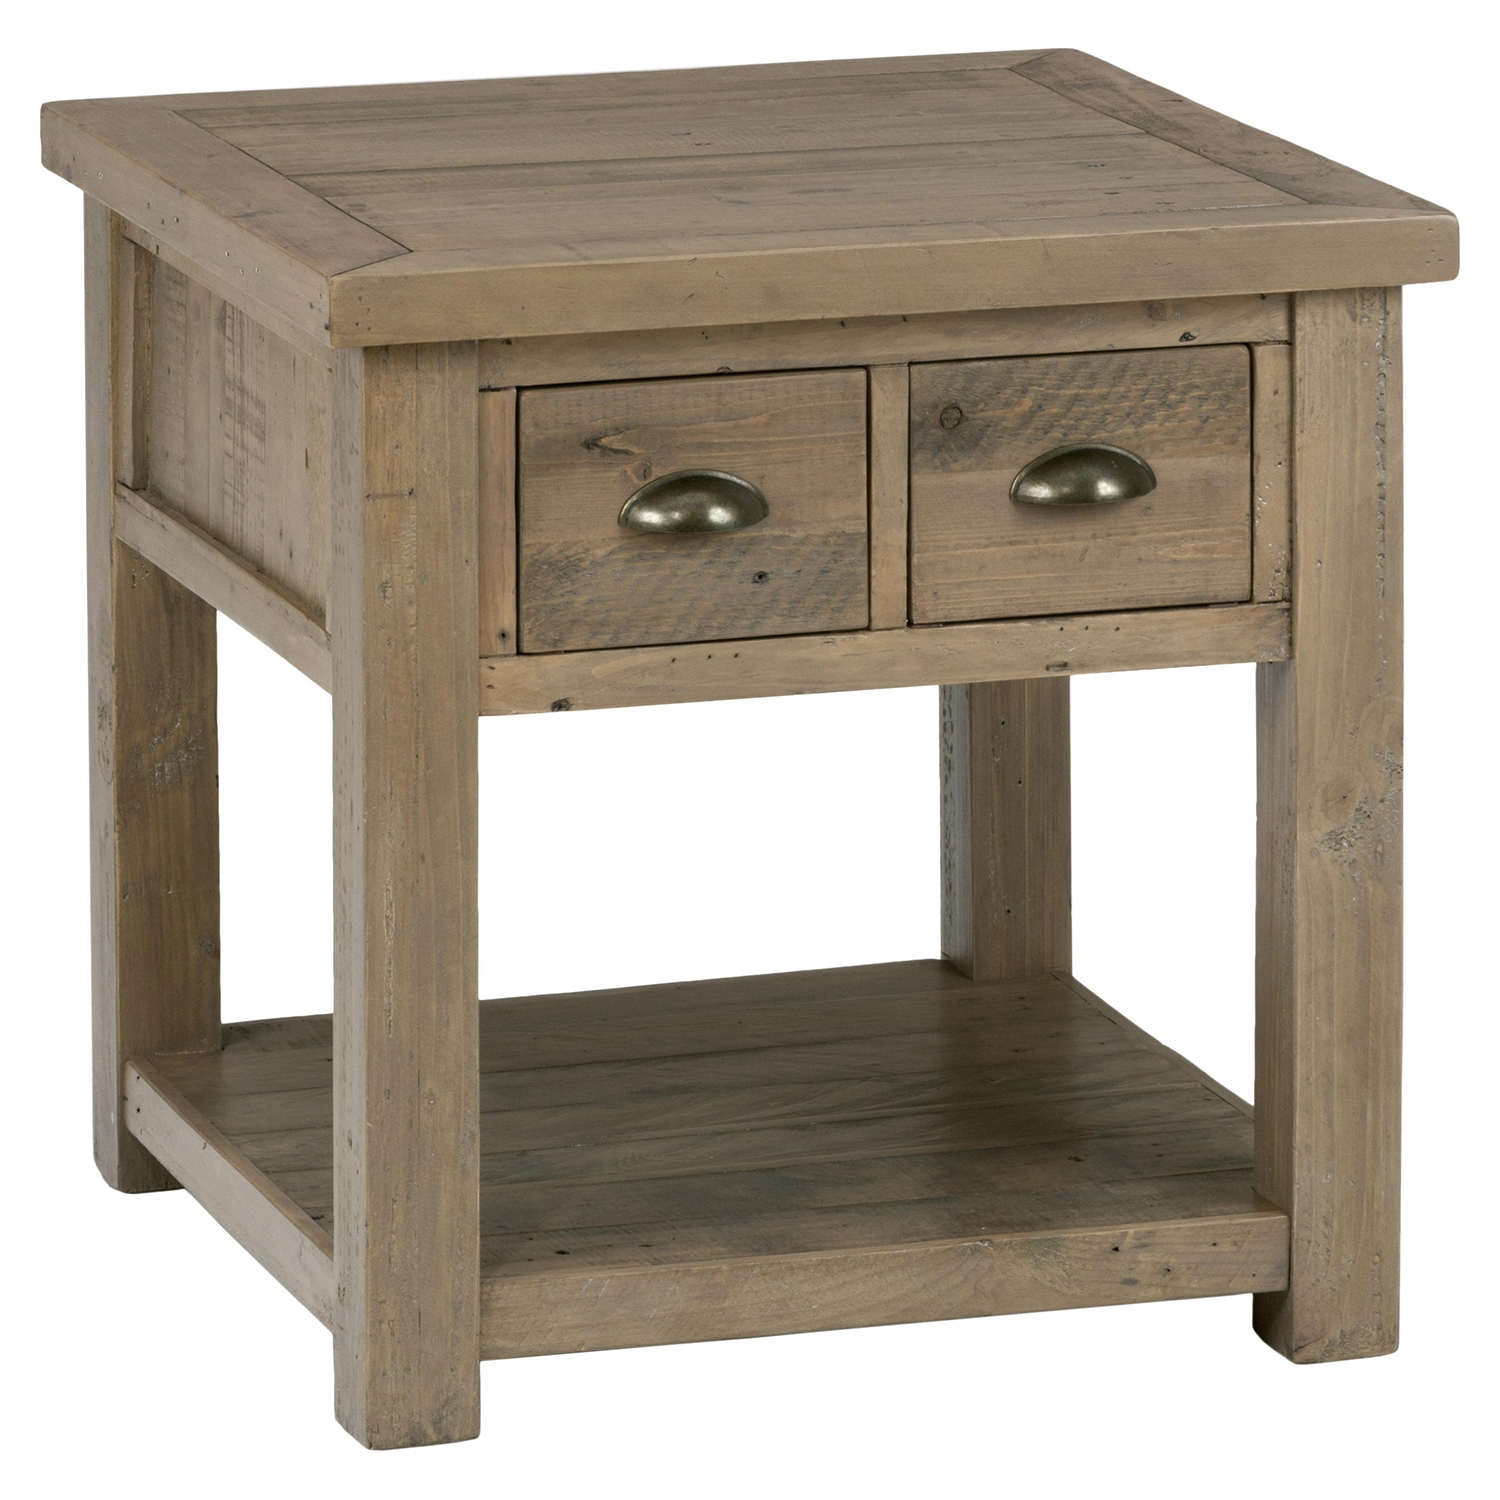 Slater Mill Square End Table - Brown